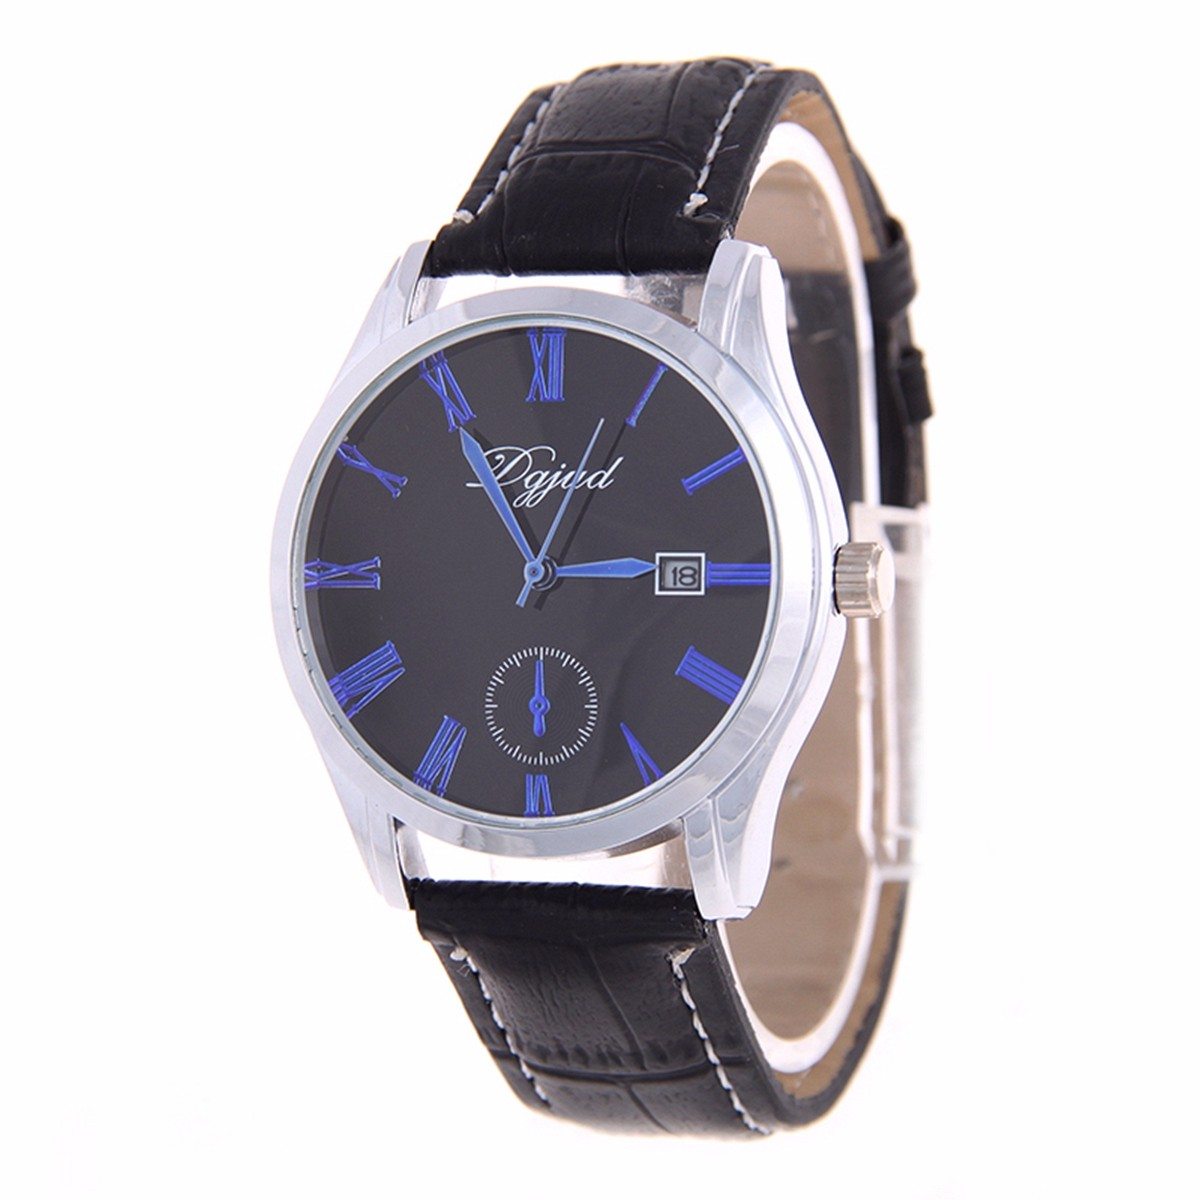 DGJUD 467 Men Women Date Pu Leather Strap Roman Numerals Classic Business Watch